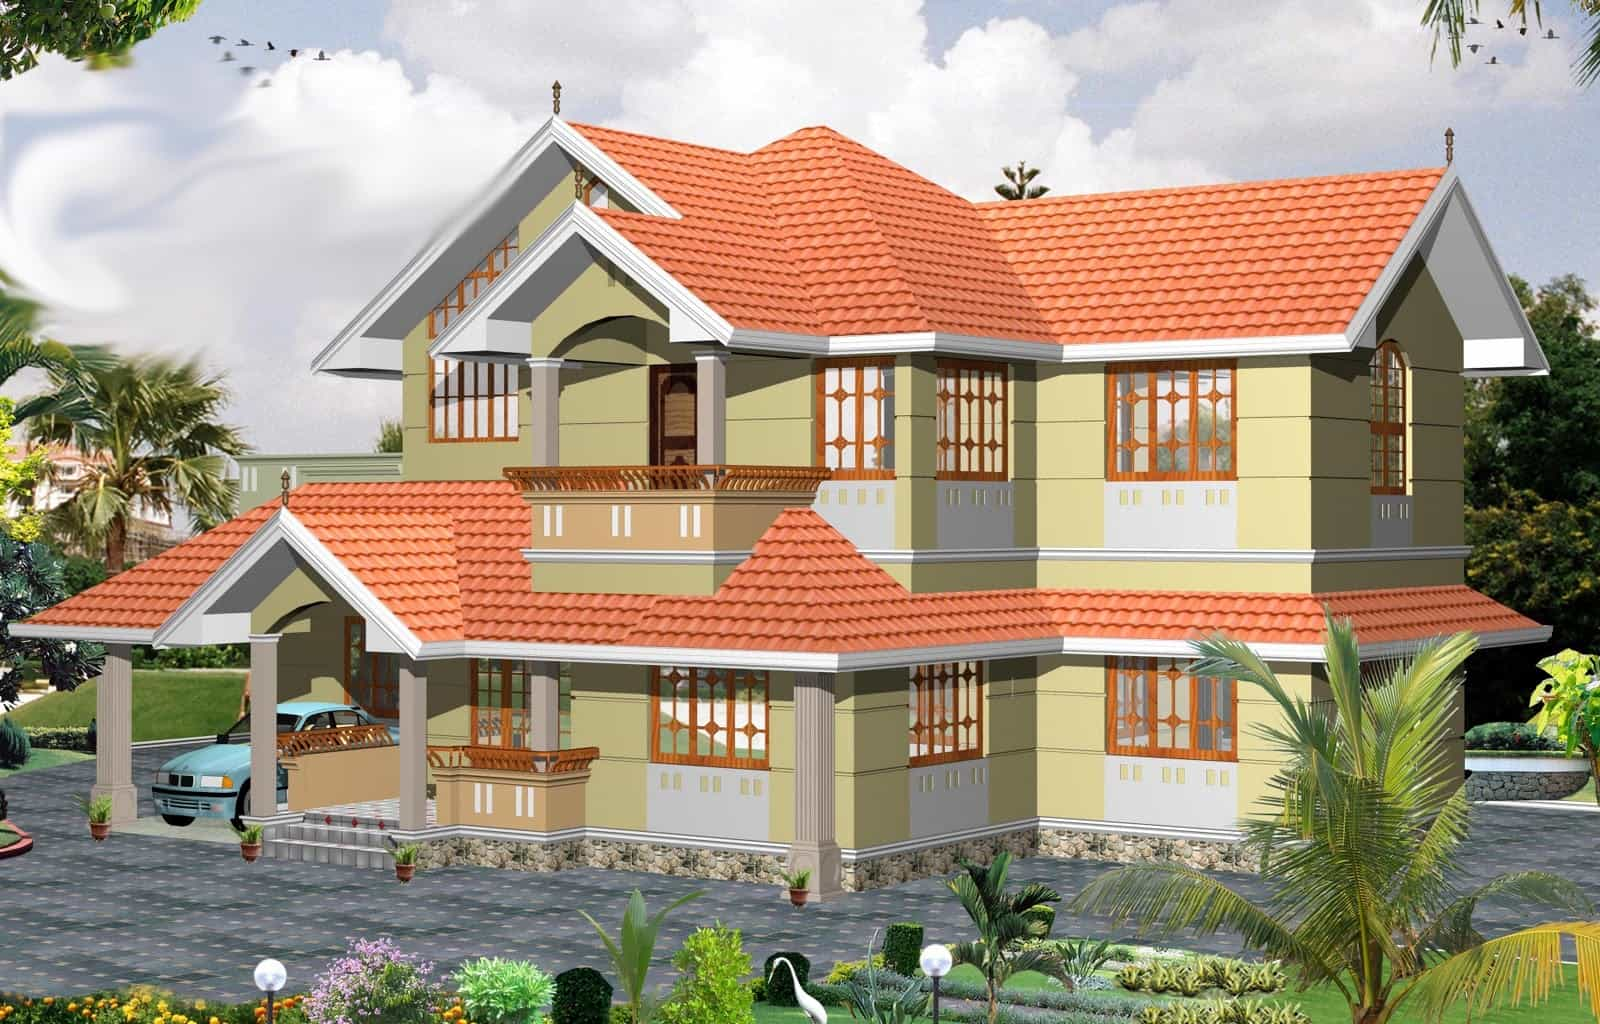 Traditional 3 bhk kerala villa design at 2000 2000 sq ft house images